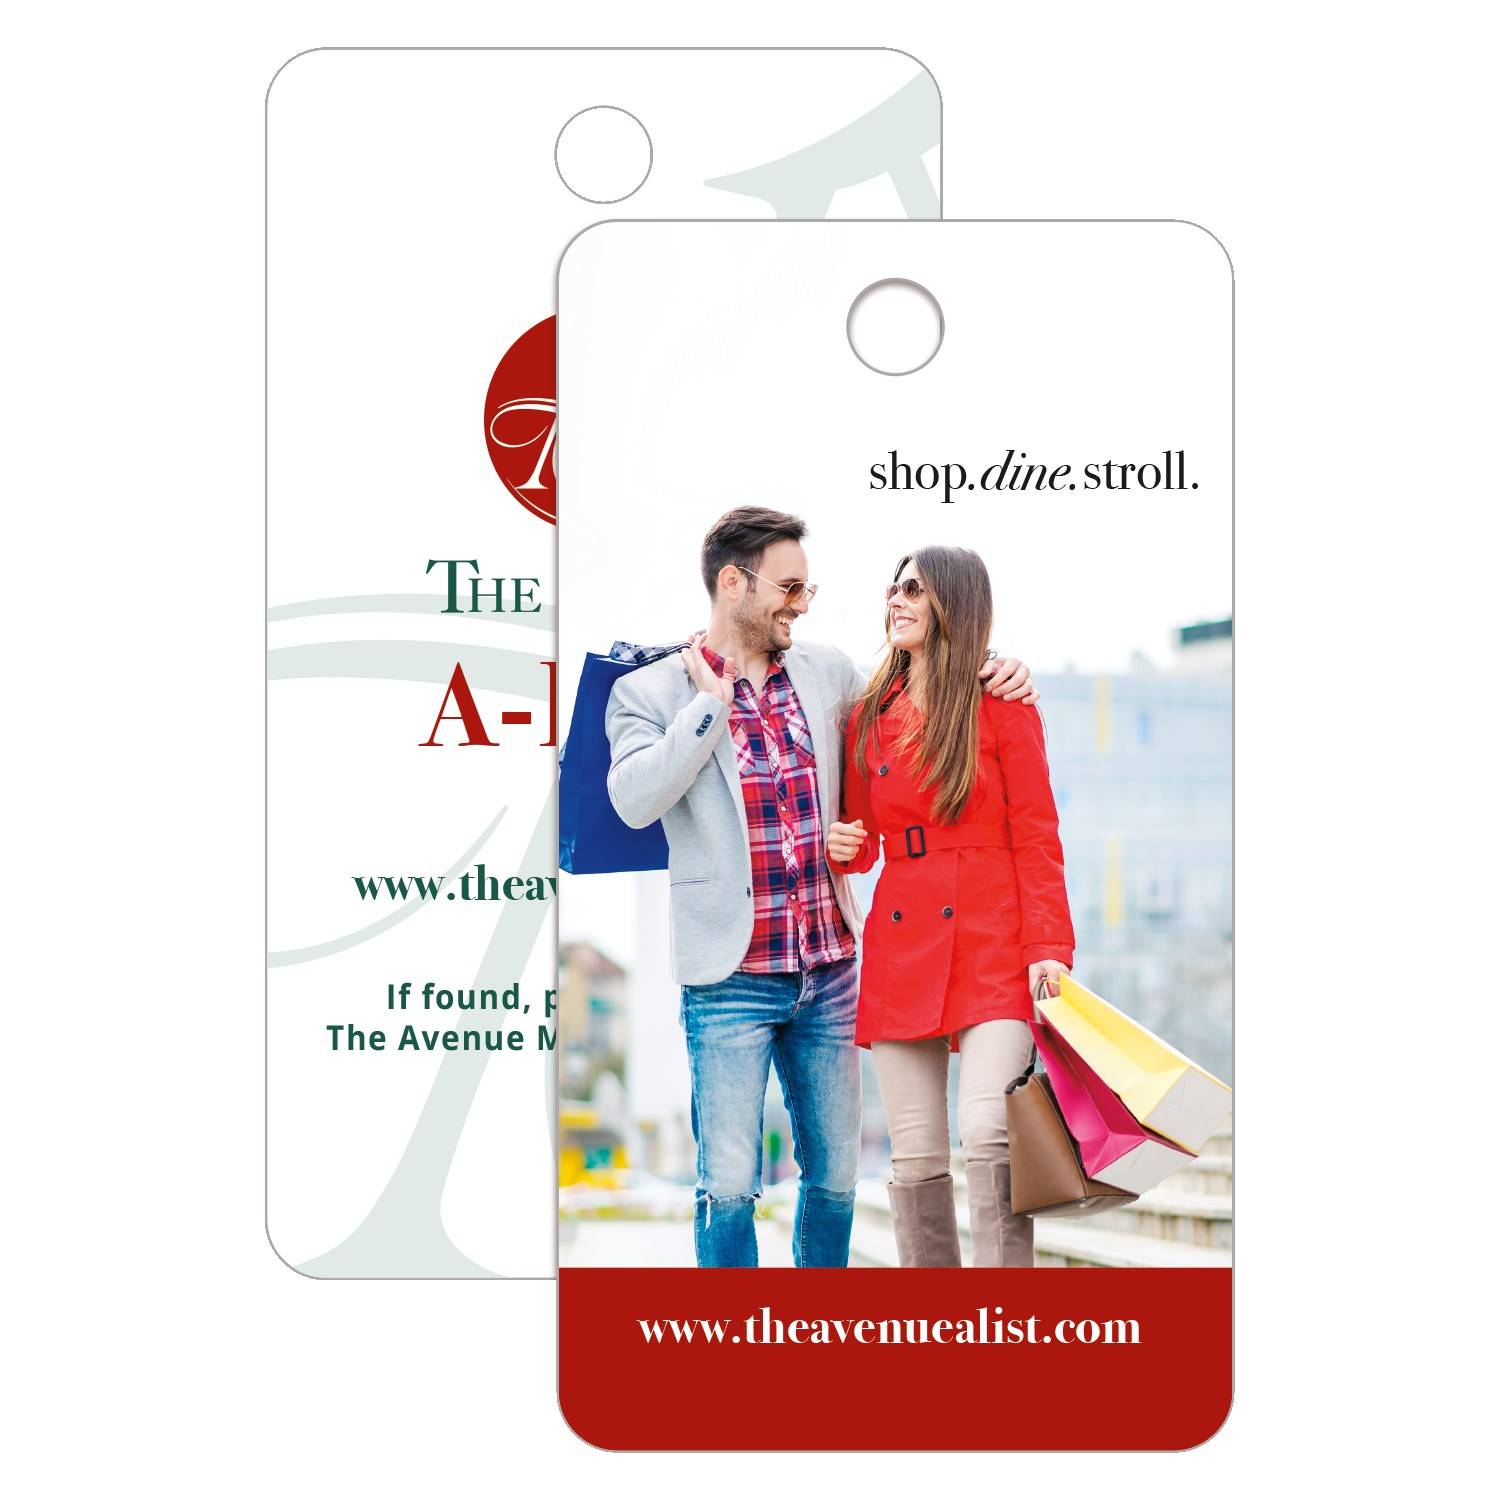 535048358-183 - Custom Digital Full Color Loyalty Cards (10 or Less Square Inch) - thumbnail